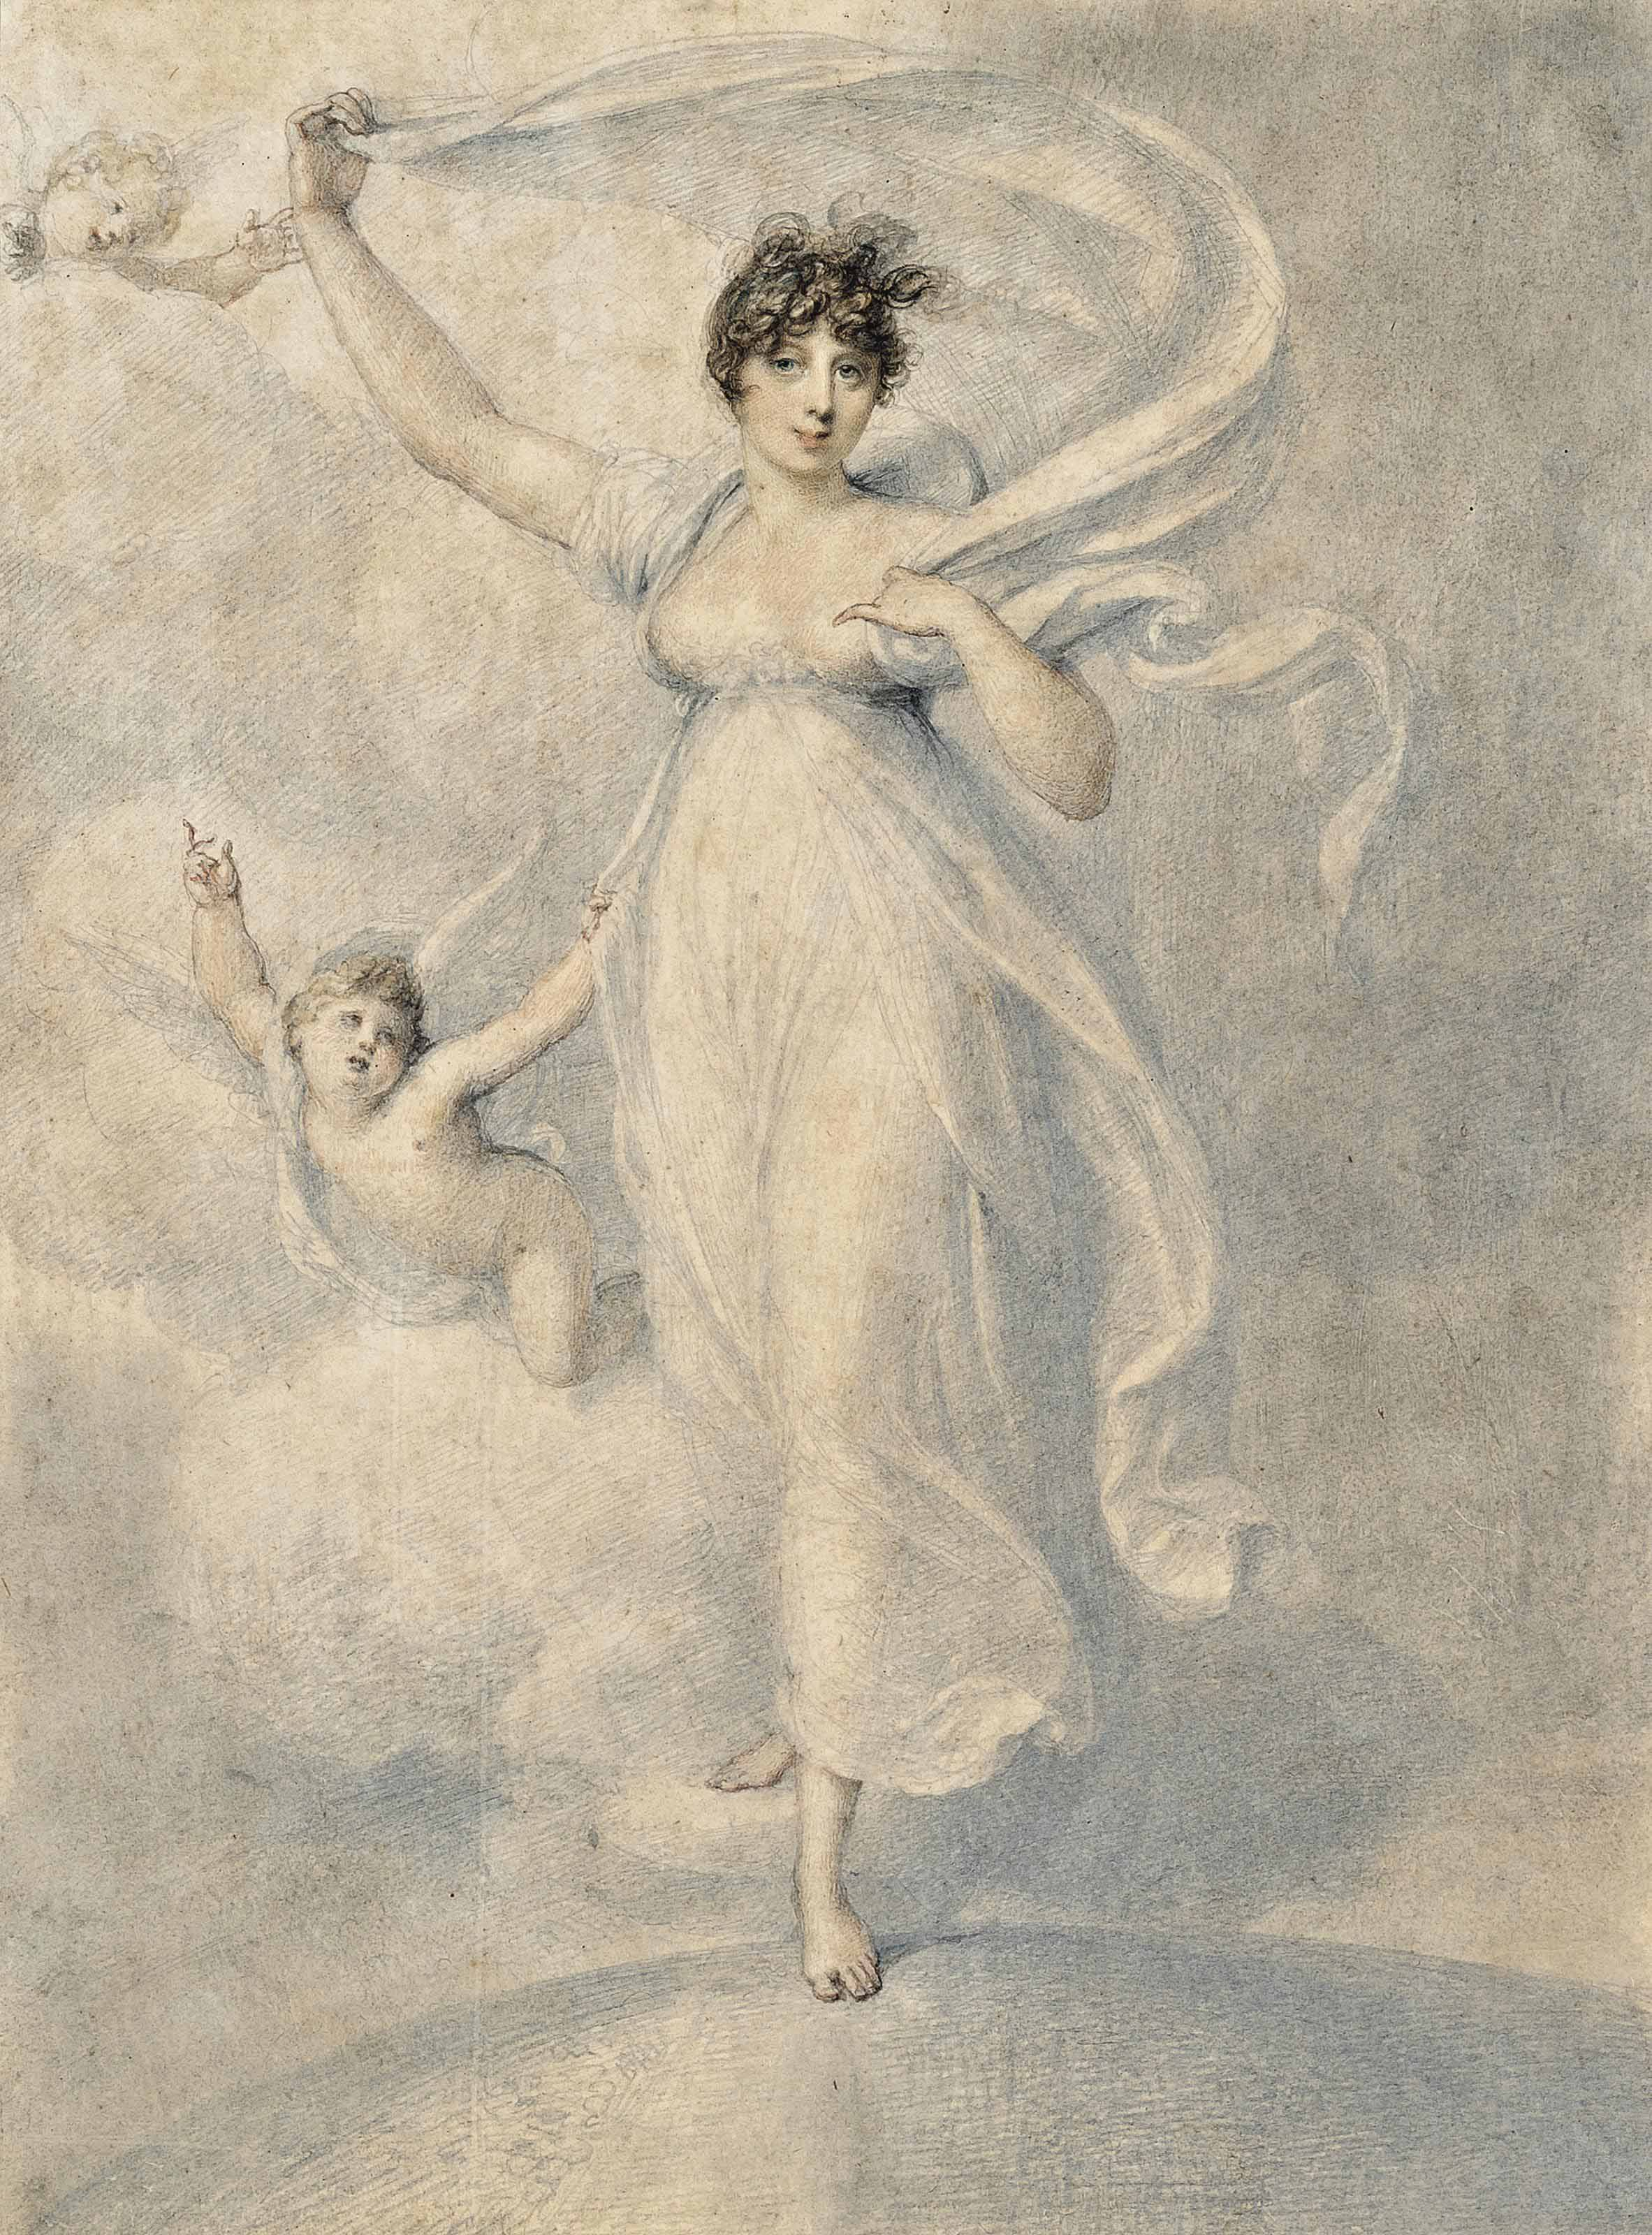 Portrait of Maria Caroline Duff, née Manners (1775 - 1805), full-length, in a white dress, standing on a globe accompanied by two cherubs